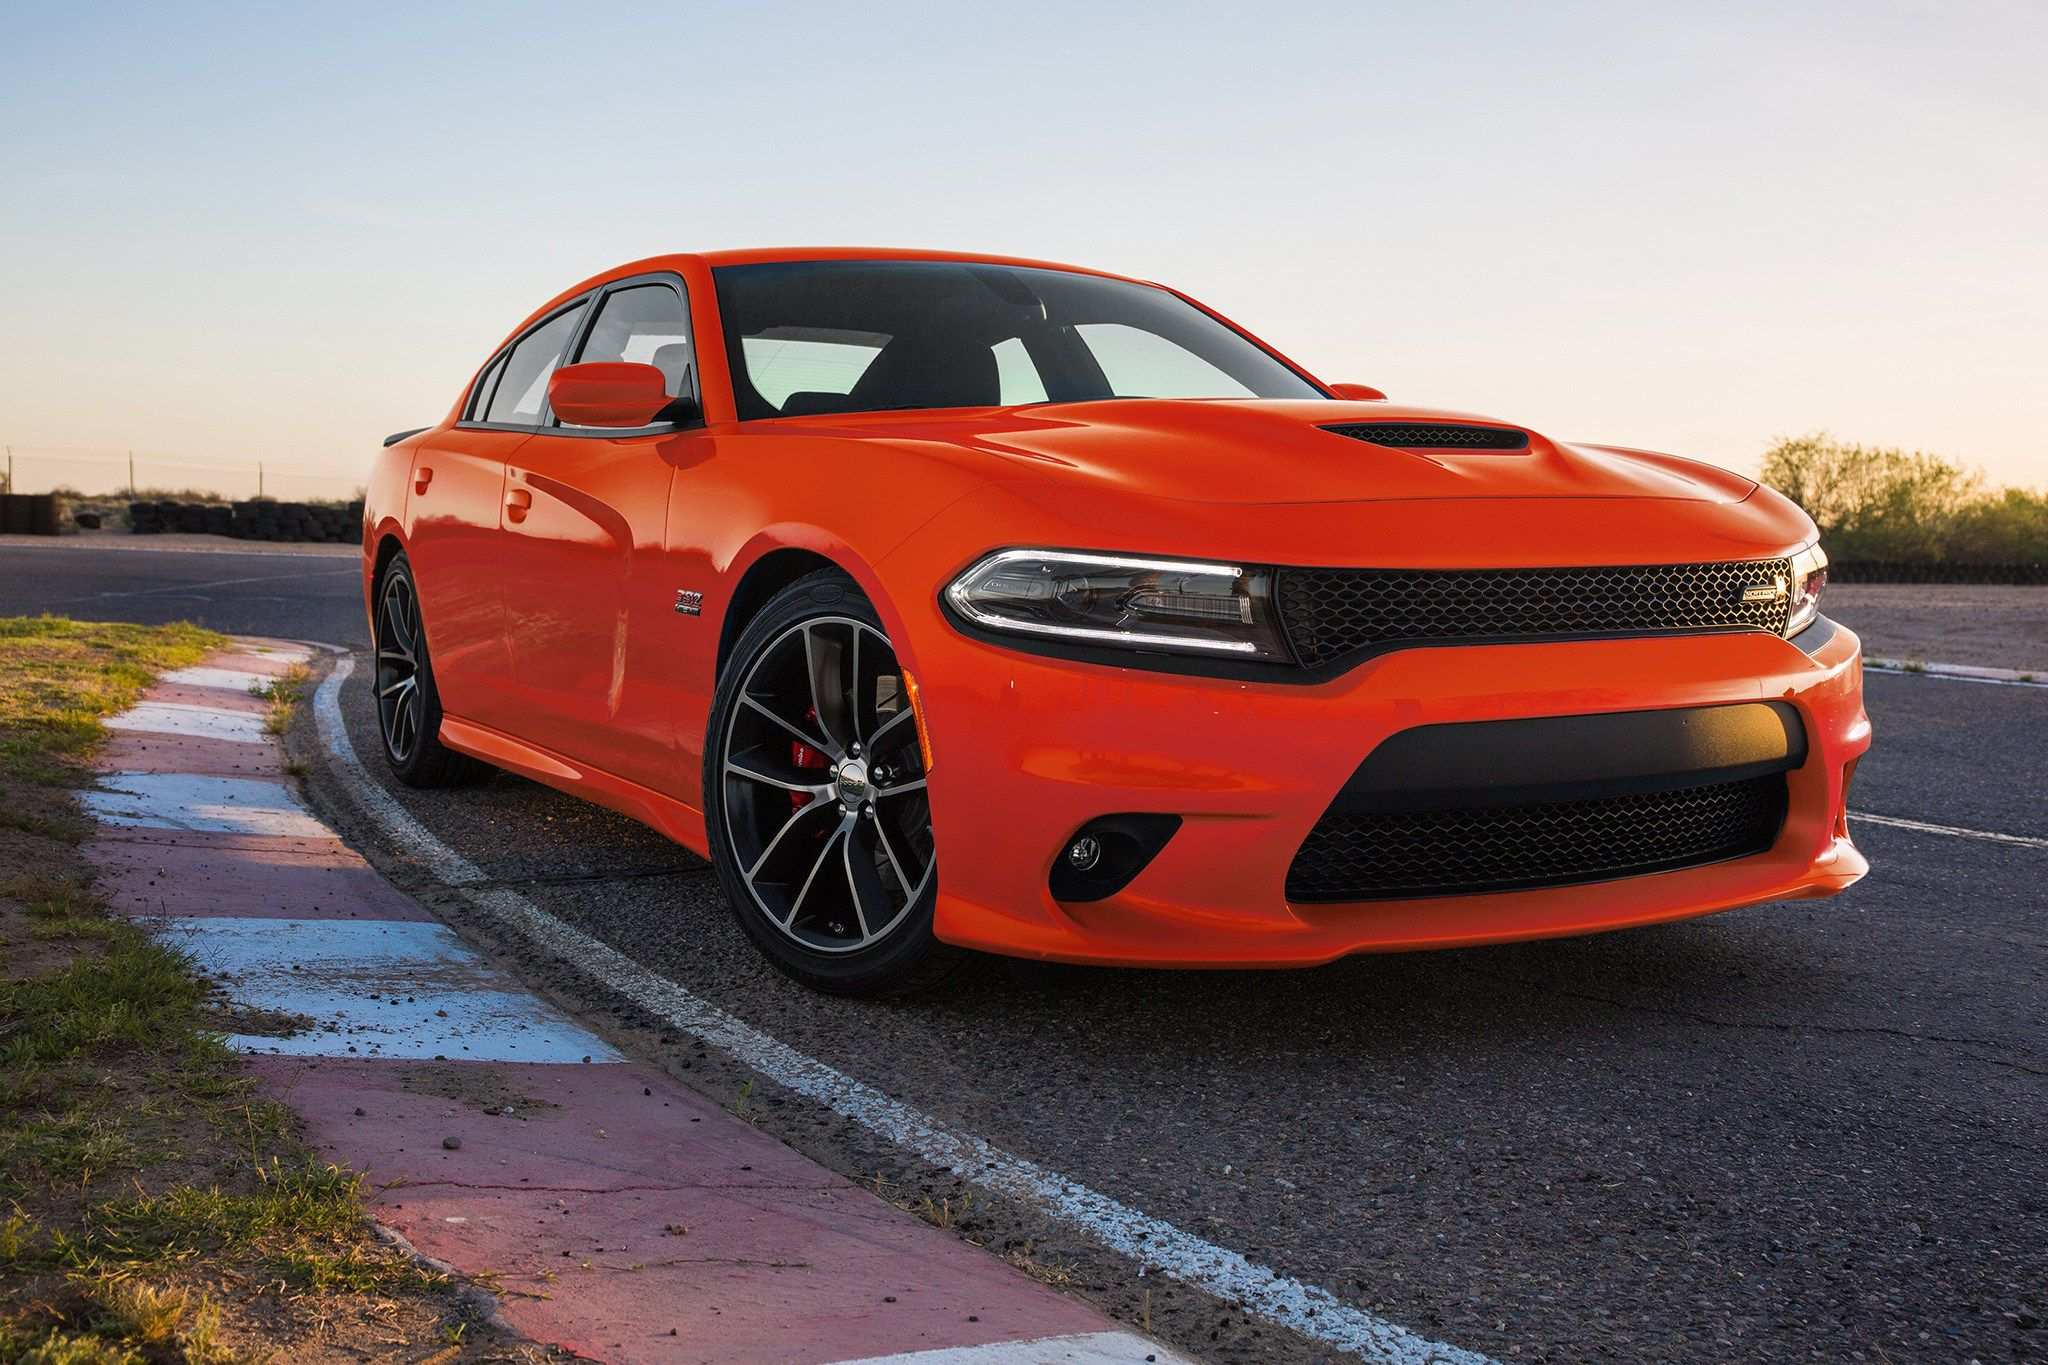 51 New Dodge Super Bee 2020 Model by Dodge Super Bee 2020